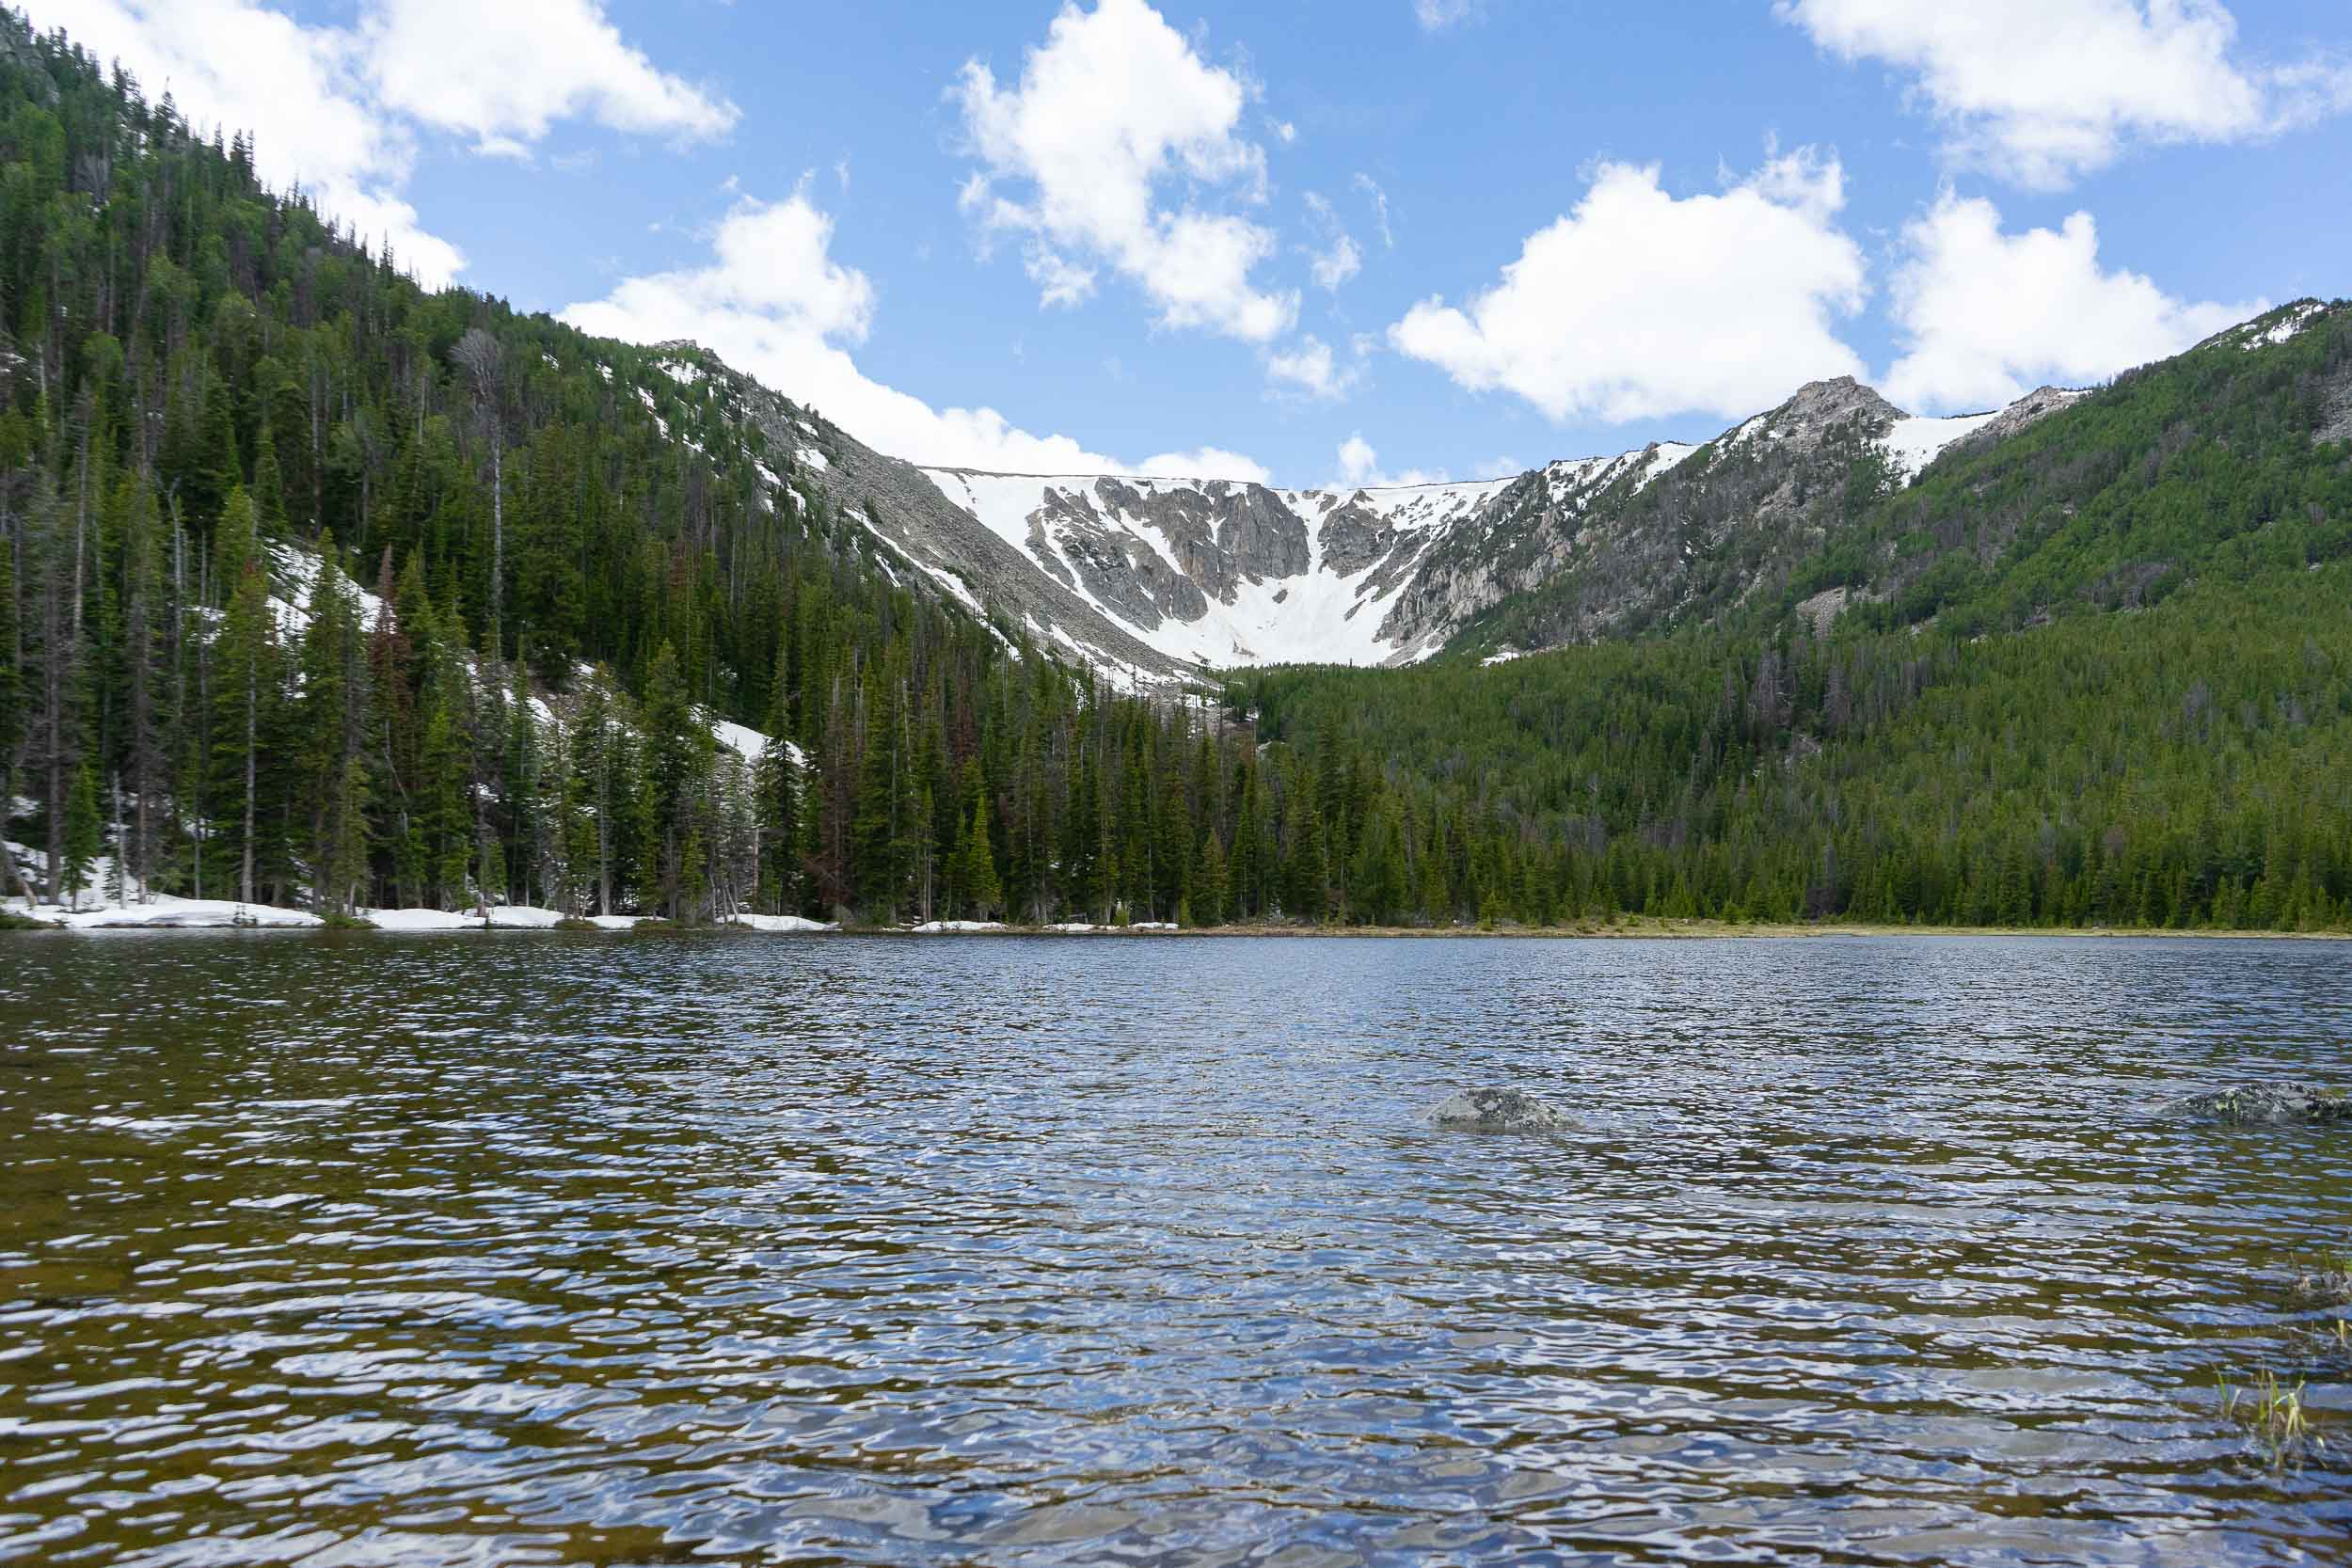 Basin Lakes Trail is an 8 mile hike to two lakes with over 2000 feet of elevation gain. The trail leads to two crystal clear lakes. Great for hiking, fishing, dogs, and backpacking.